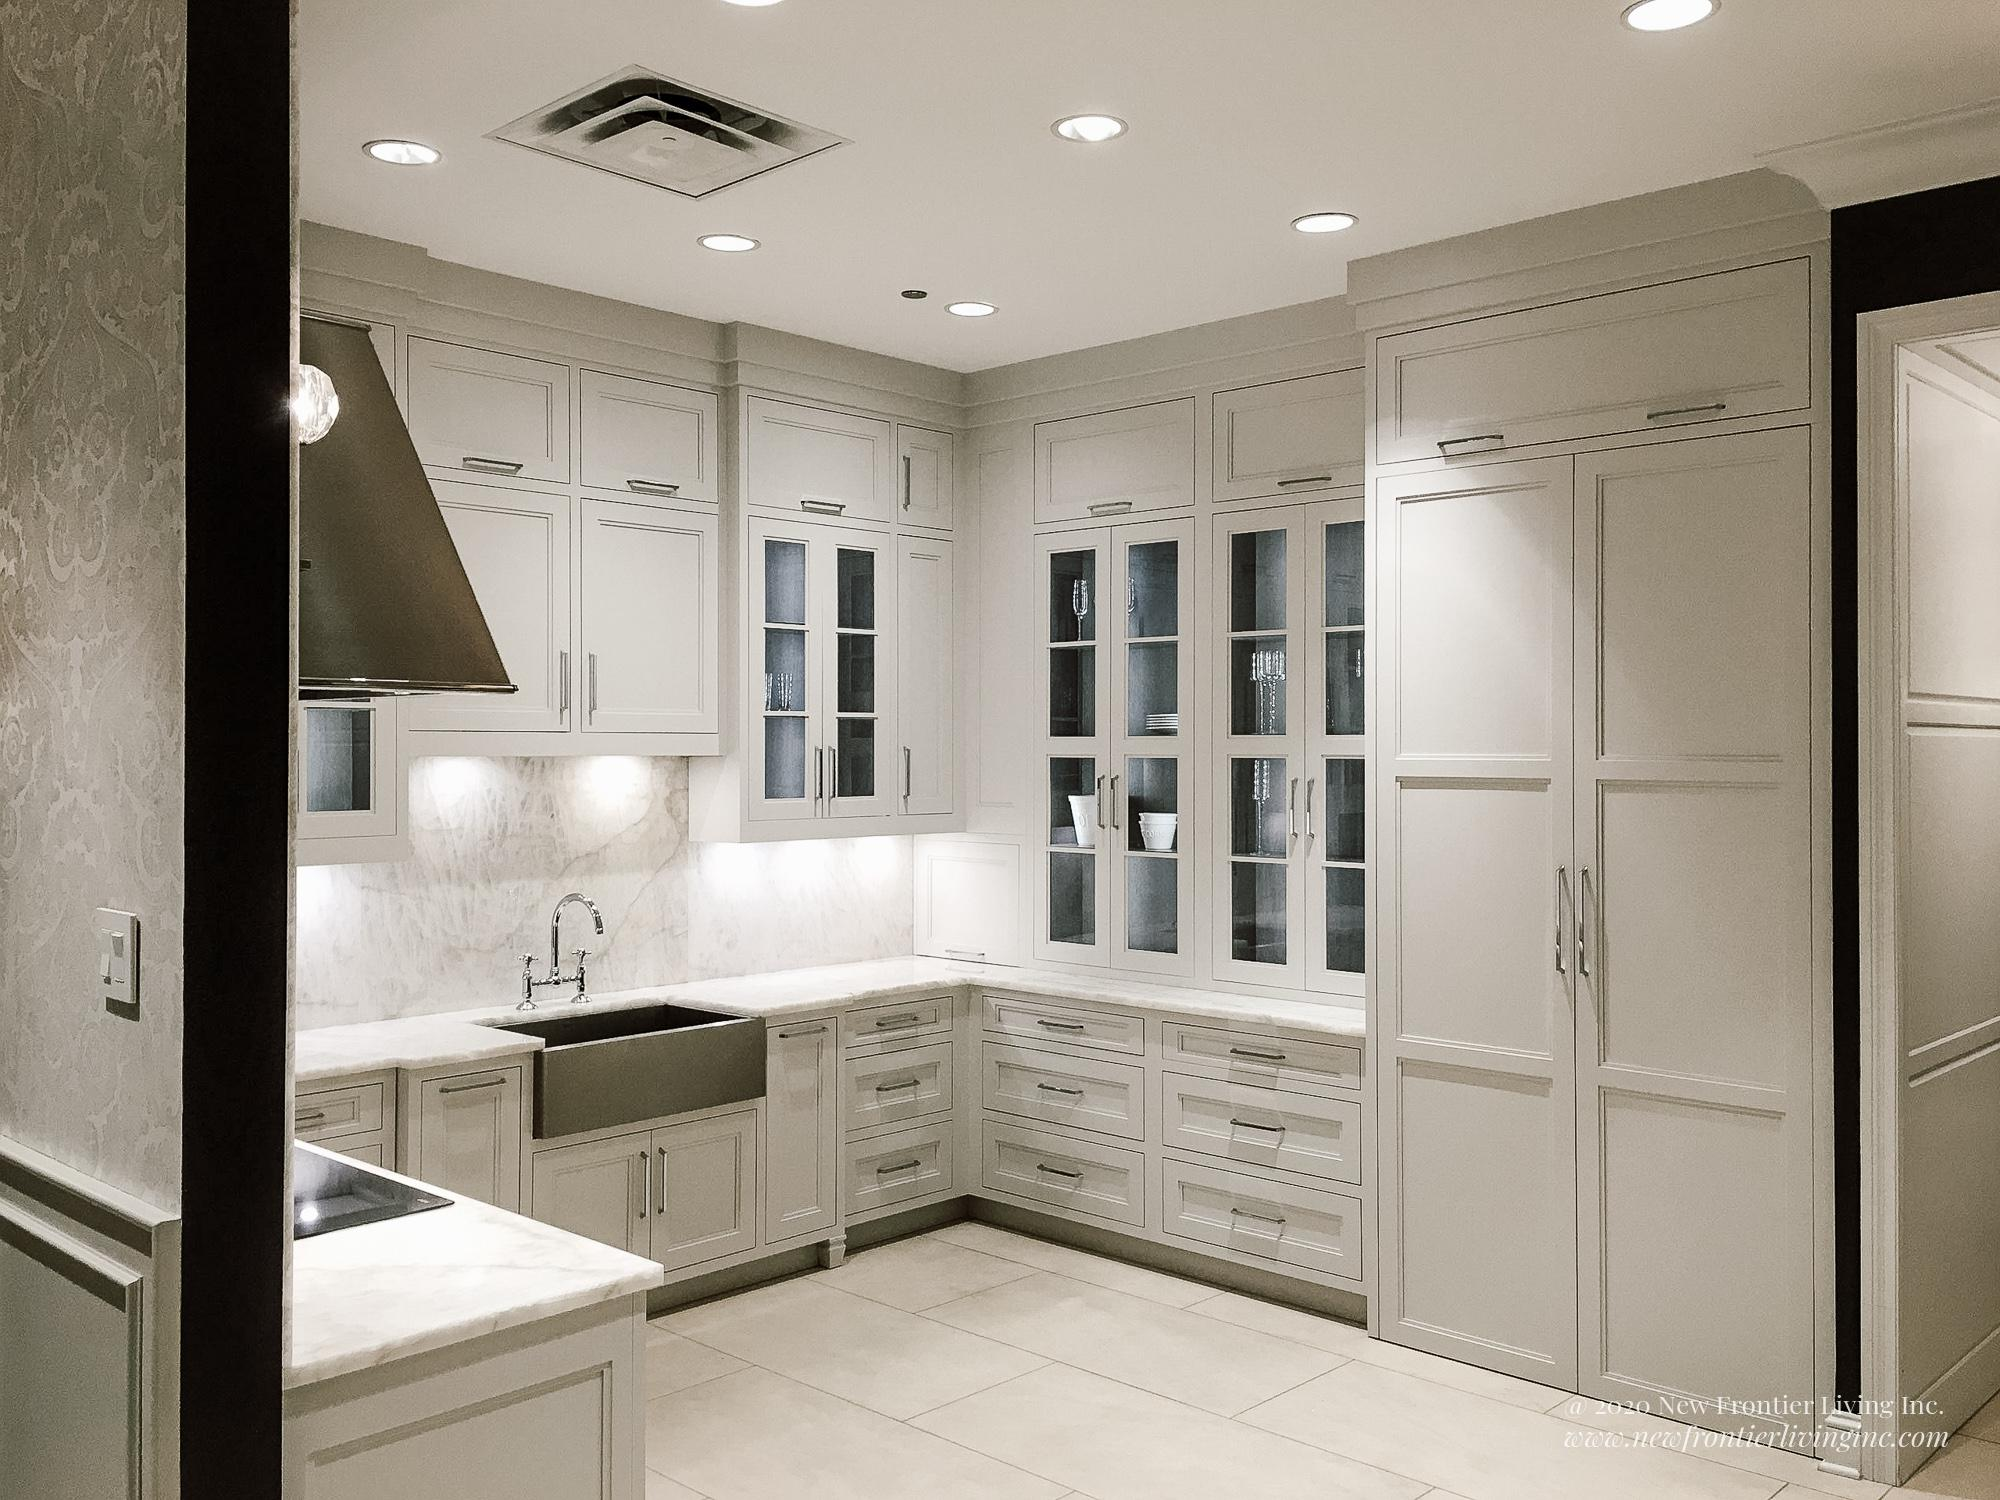 Traditional cream kitchen with silver hood and cooktop and farmhouse sink